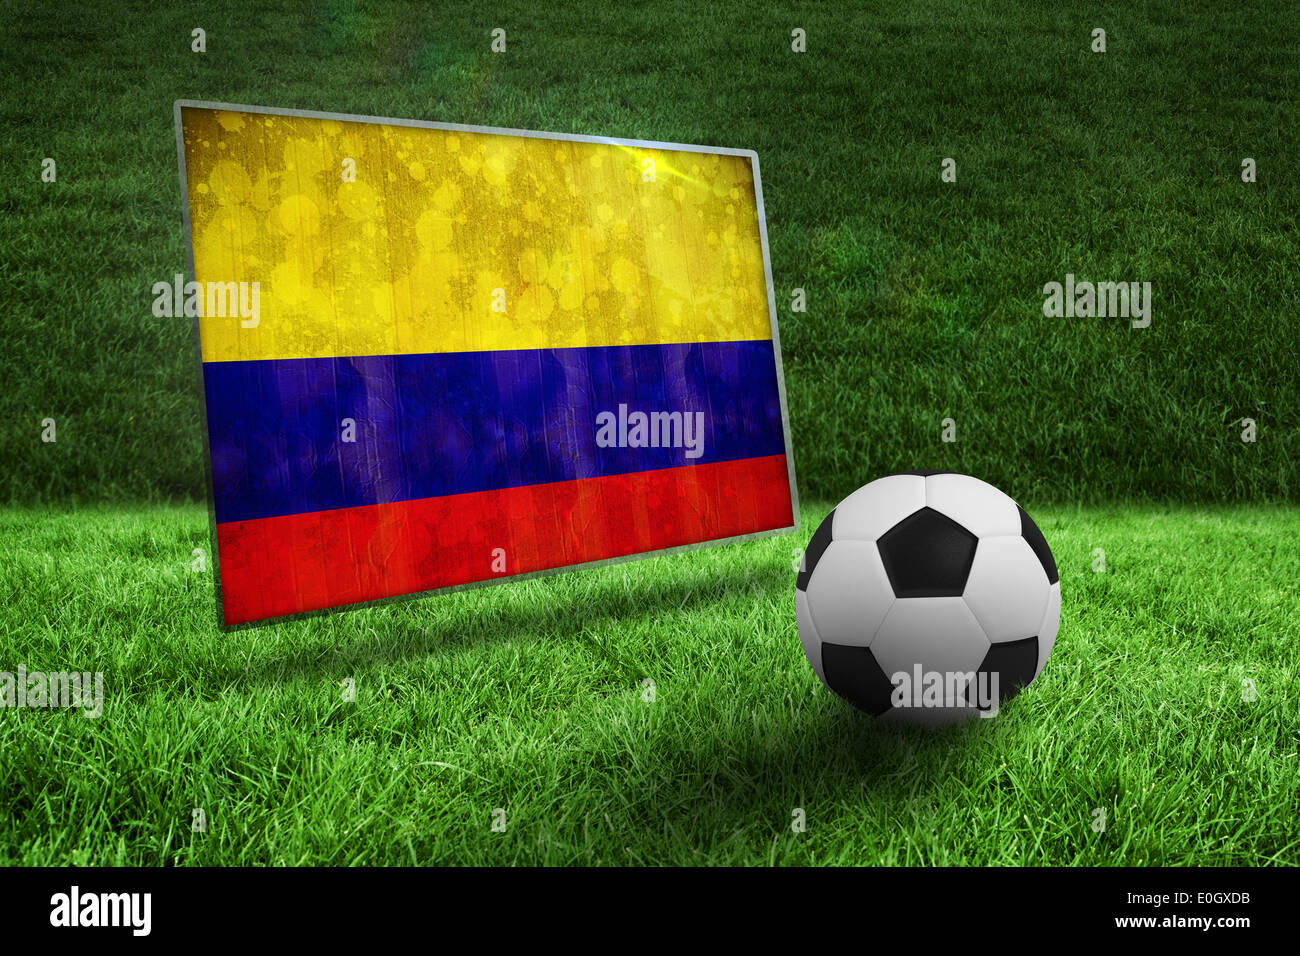 Colombia Flag Soccer Ball Football Imágenes De Stock   Colombia Flag ... ee658e8652d96